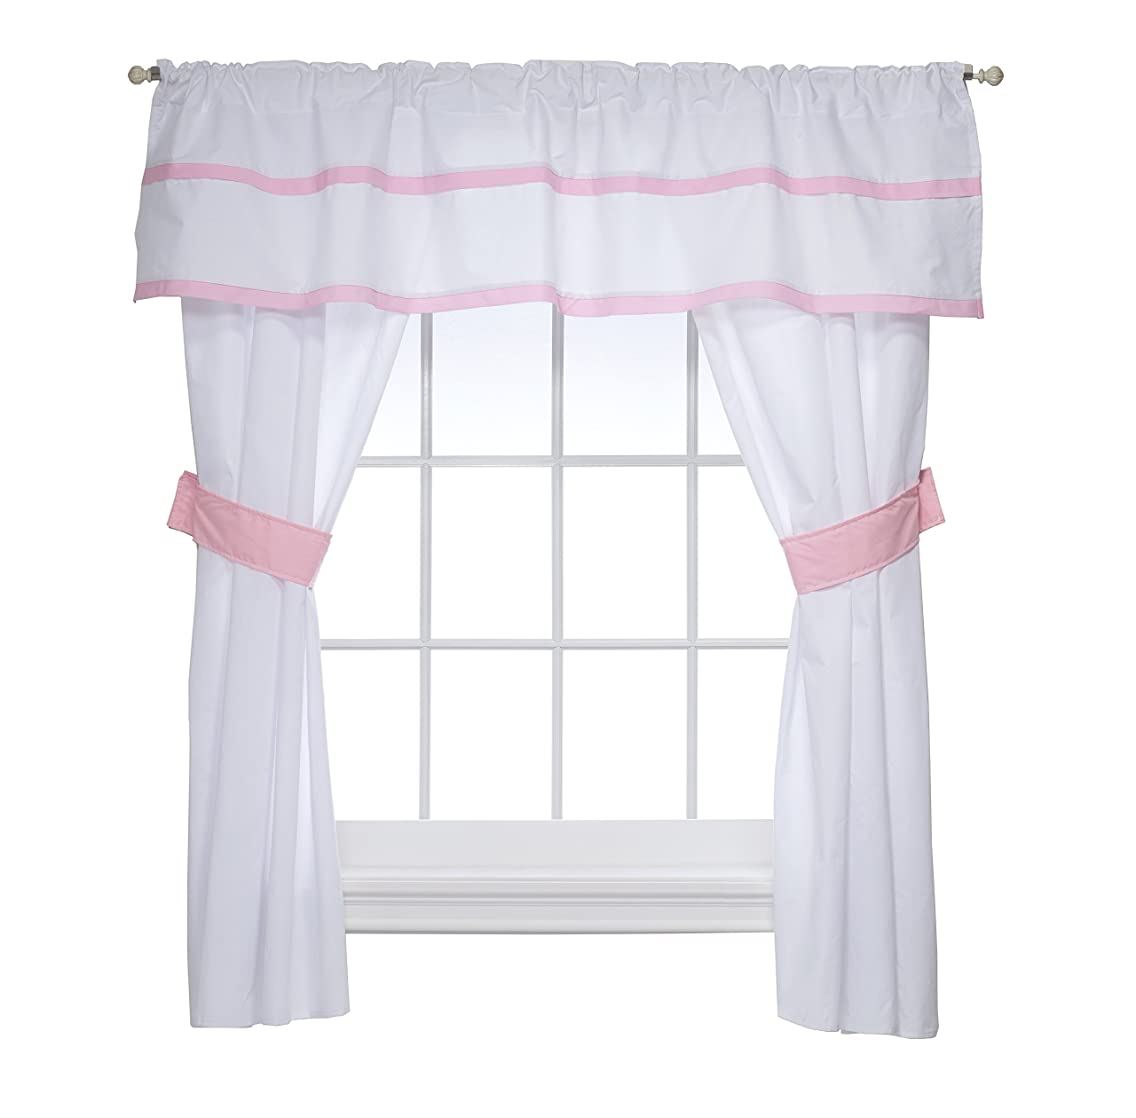 Baby Doll Medallion 5 Piece Window Valance and Curtain Set, Pink